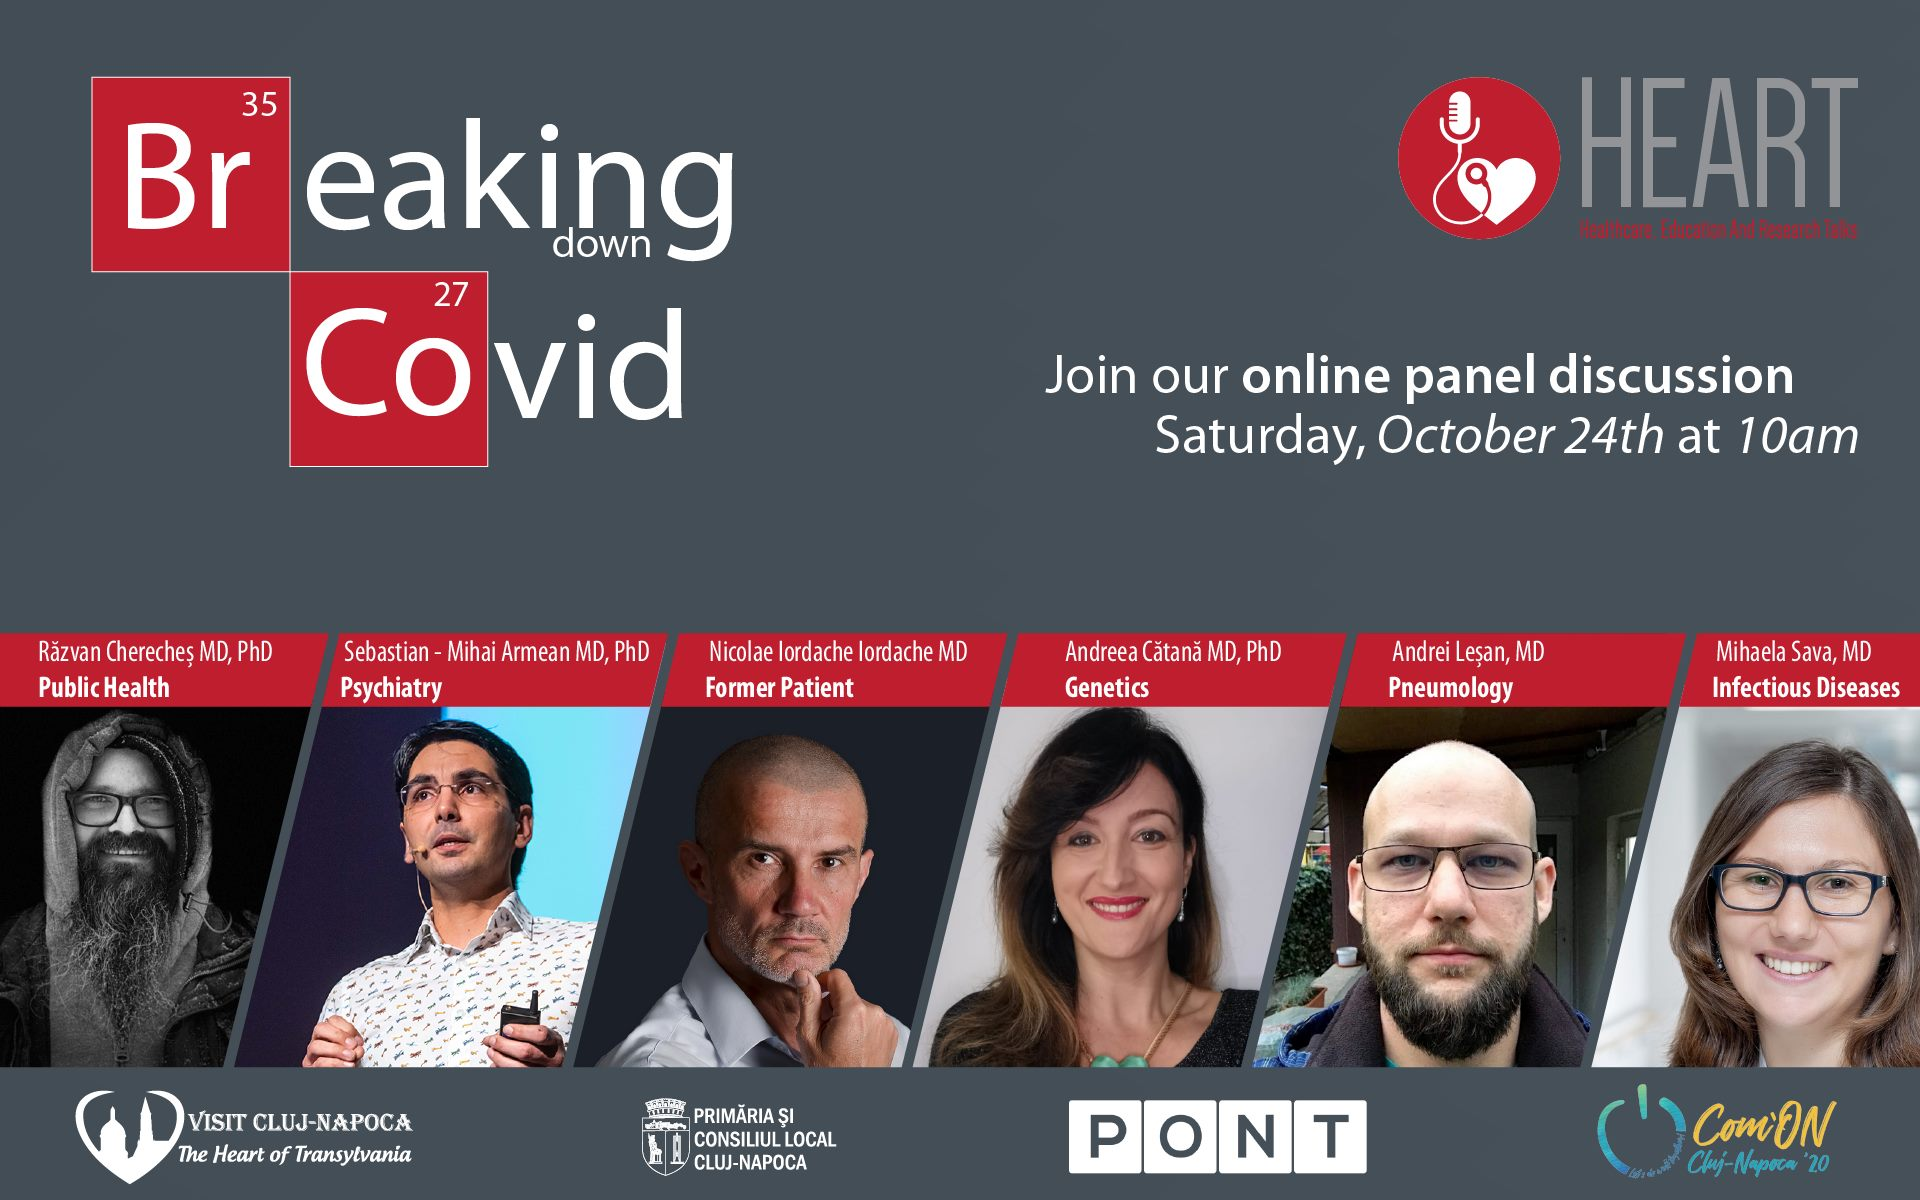 Breaking (down) Covid - Panel discussion